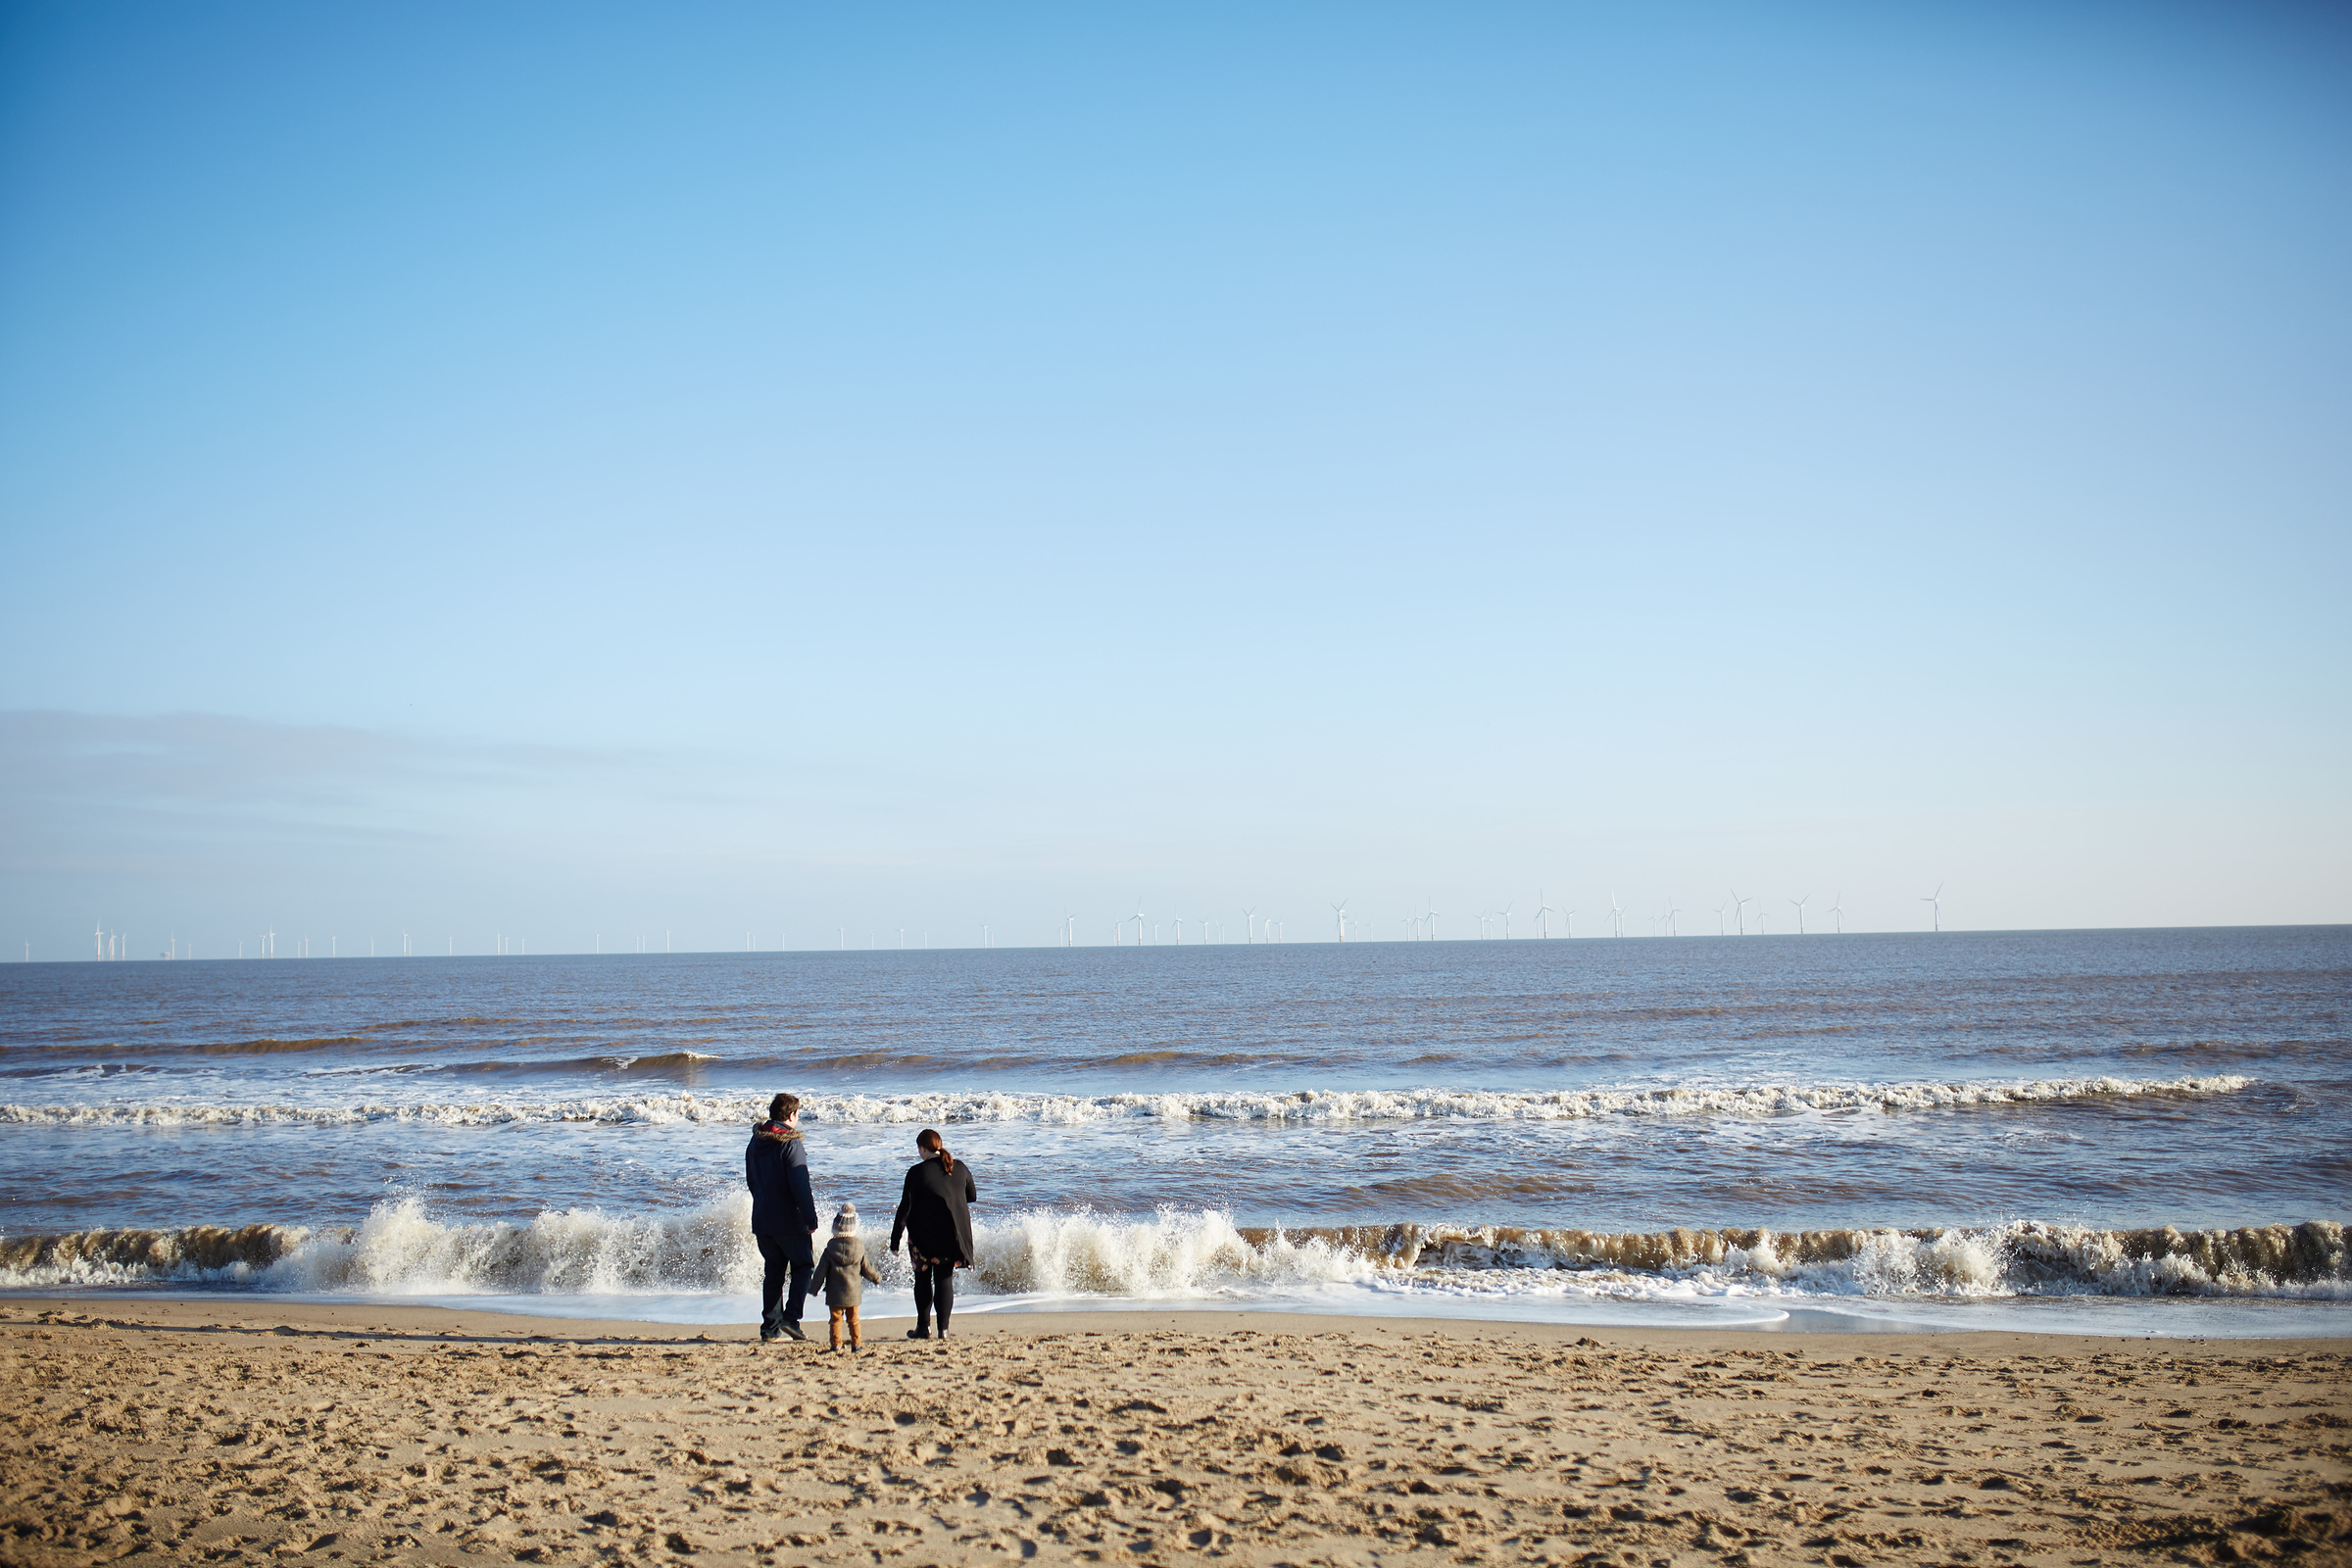 A family by the sea shore in Skegness